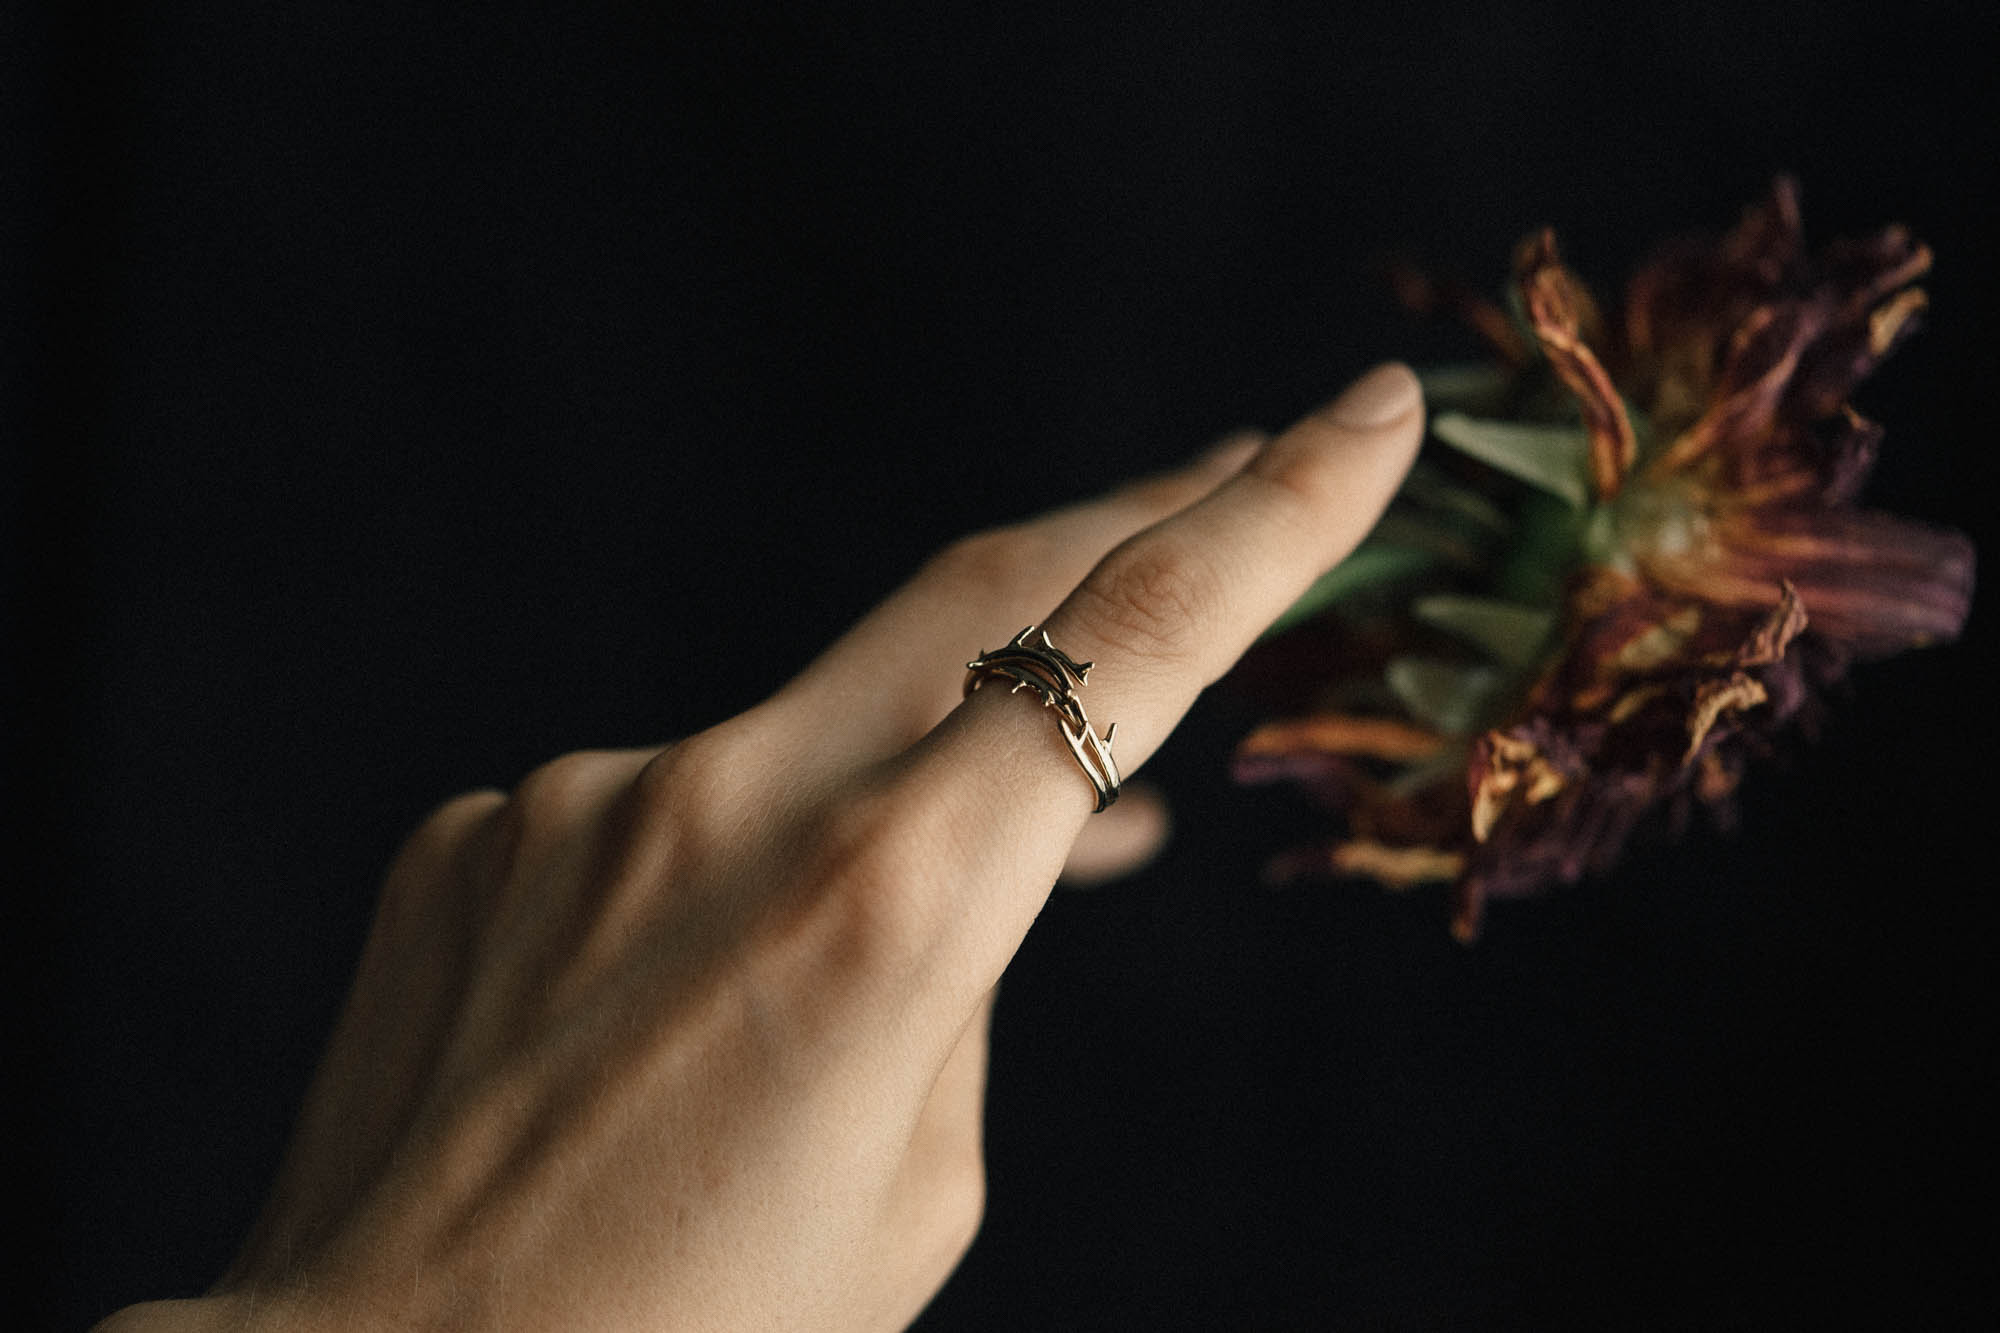 Thorn Ring No. 1